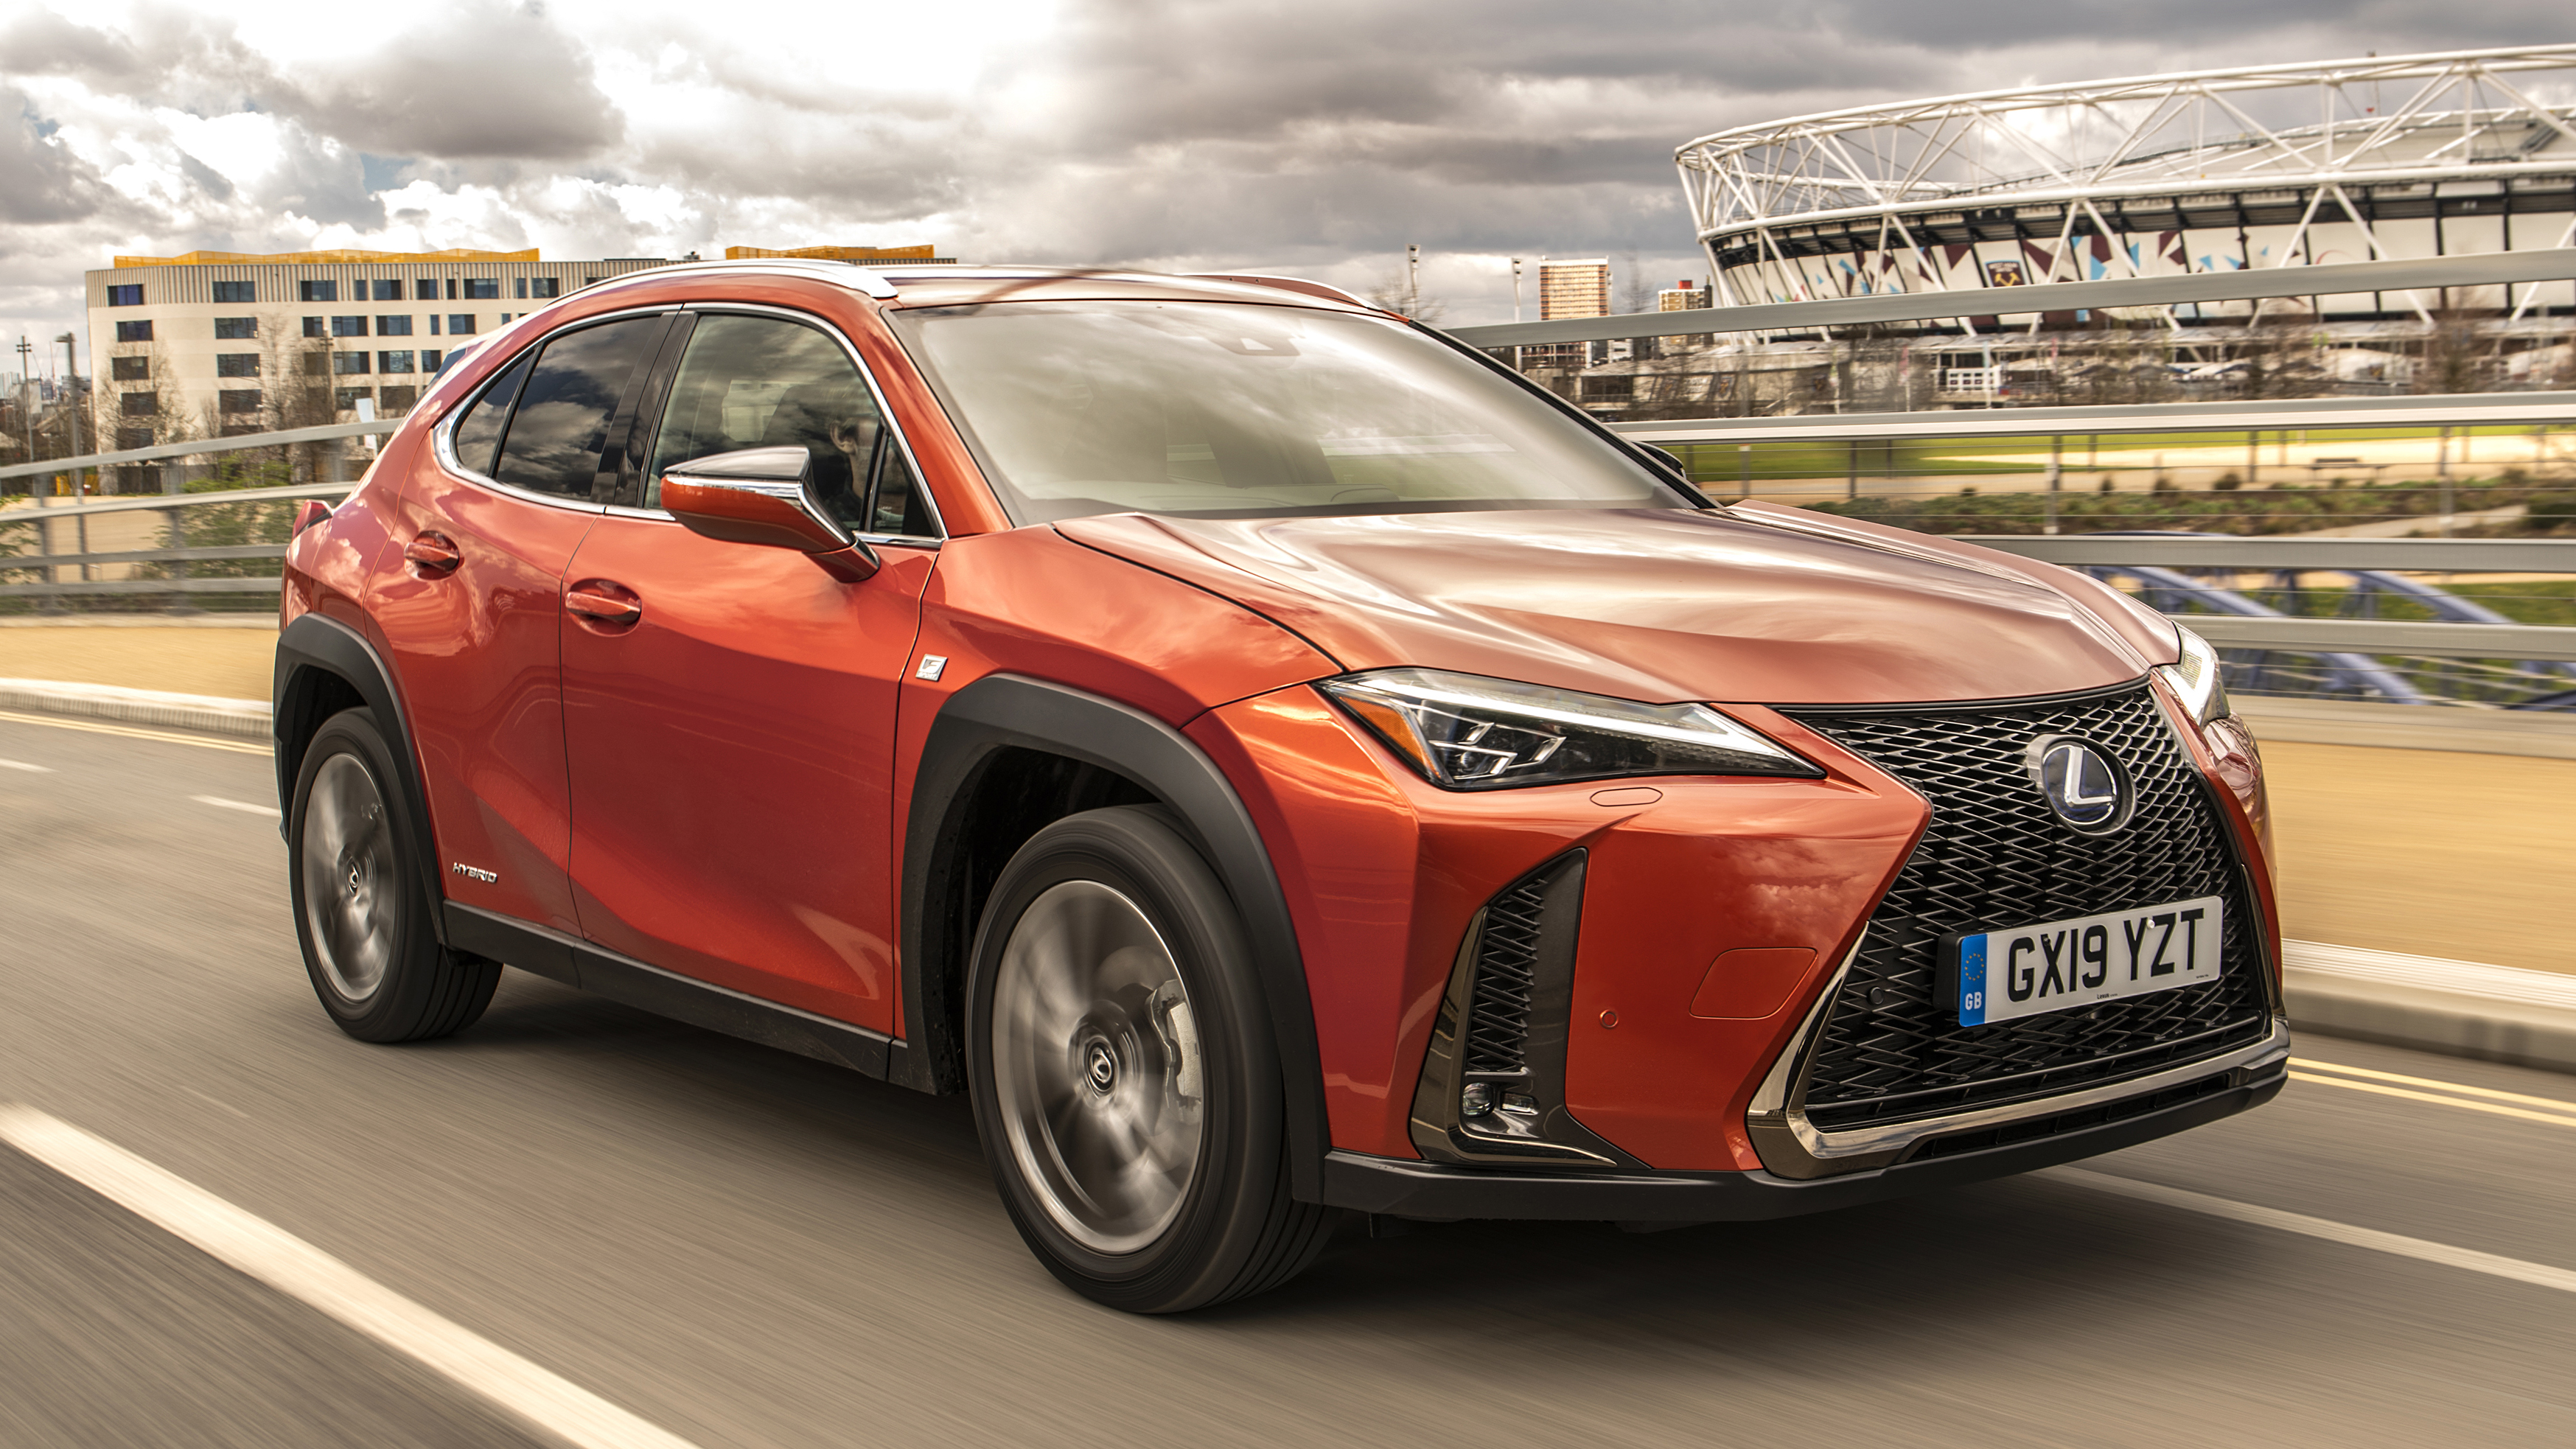 Lexus Ux 250h Review Self Charging Hybrid Suv Driven Top Gear